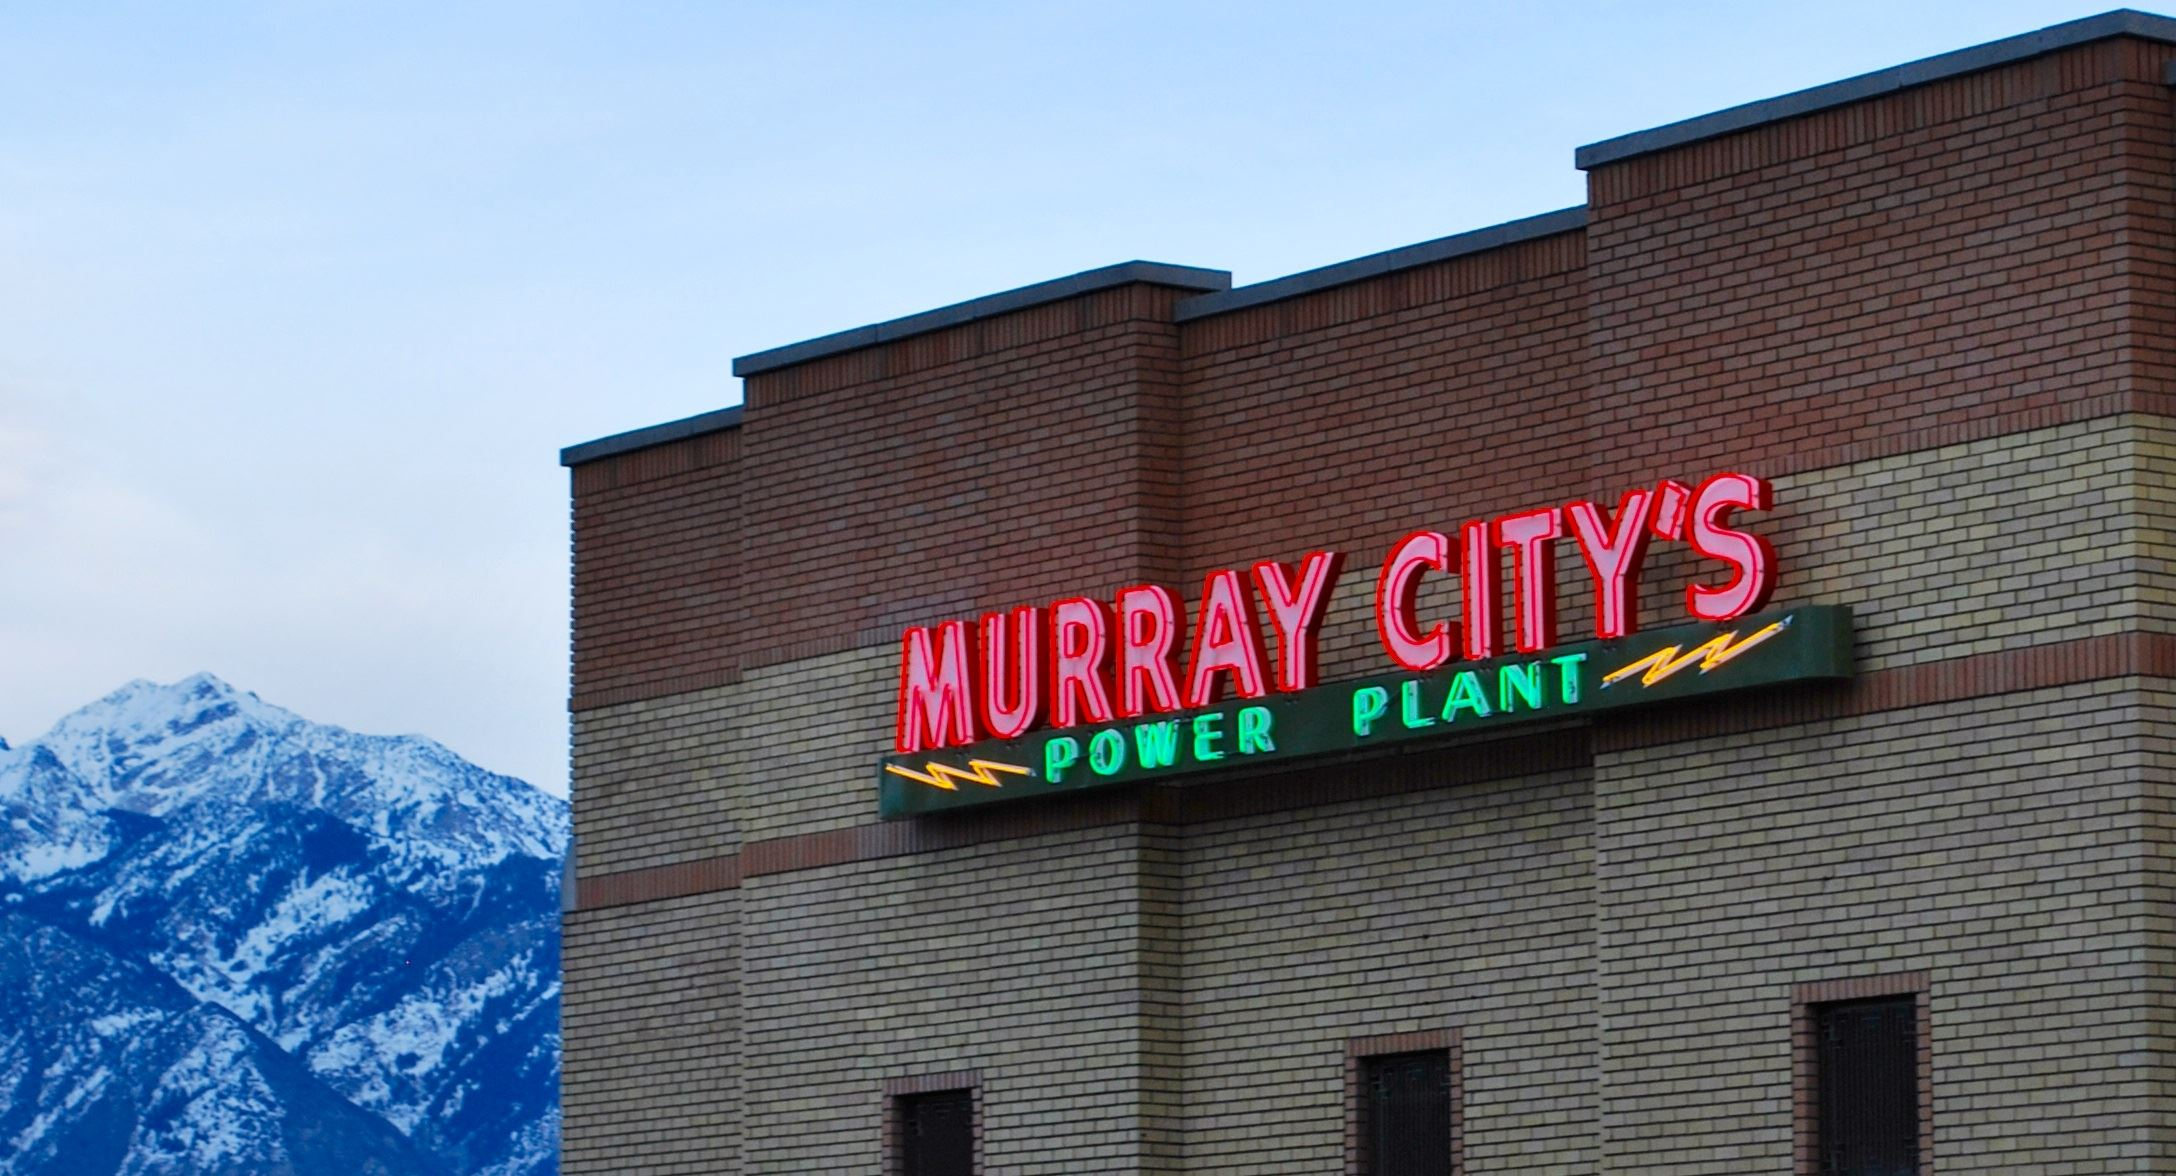 Murray City's Power Plant Neon Sign